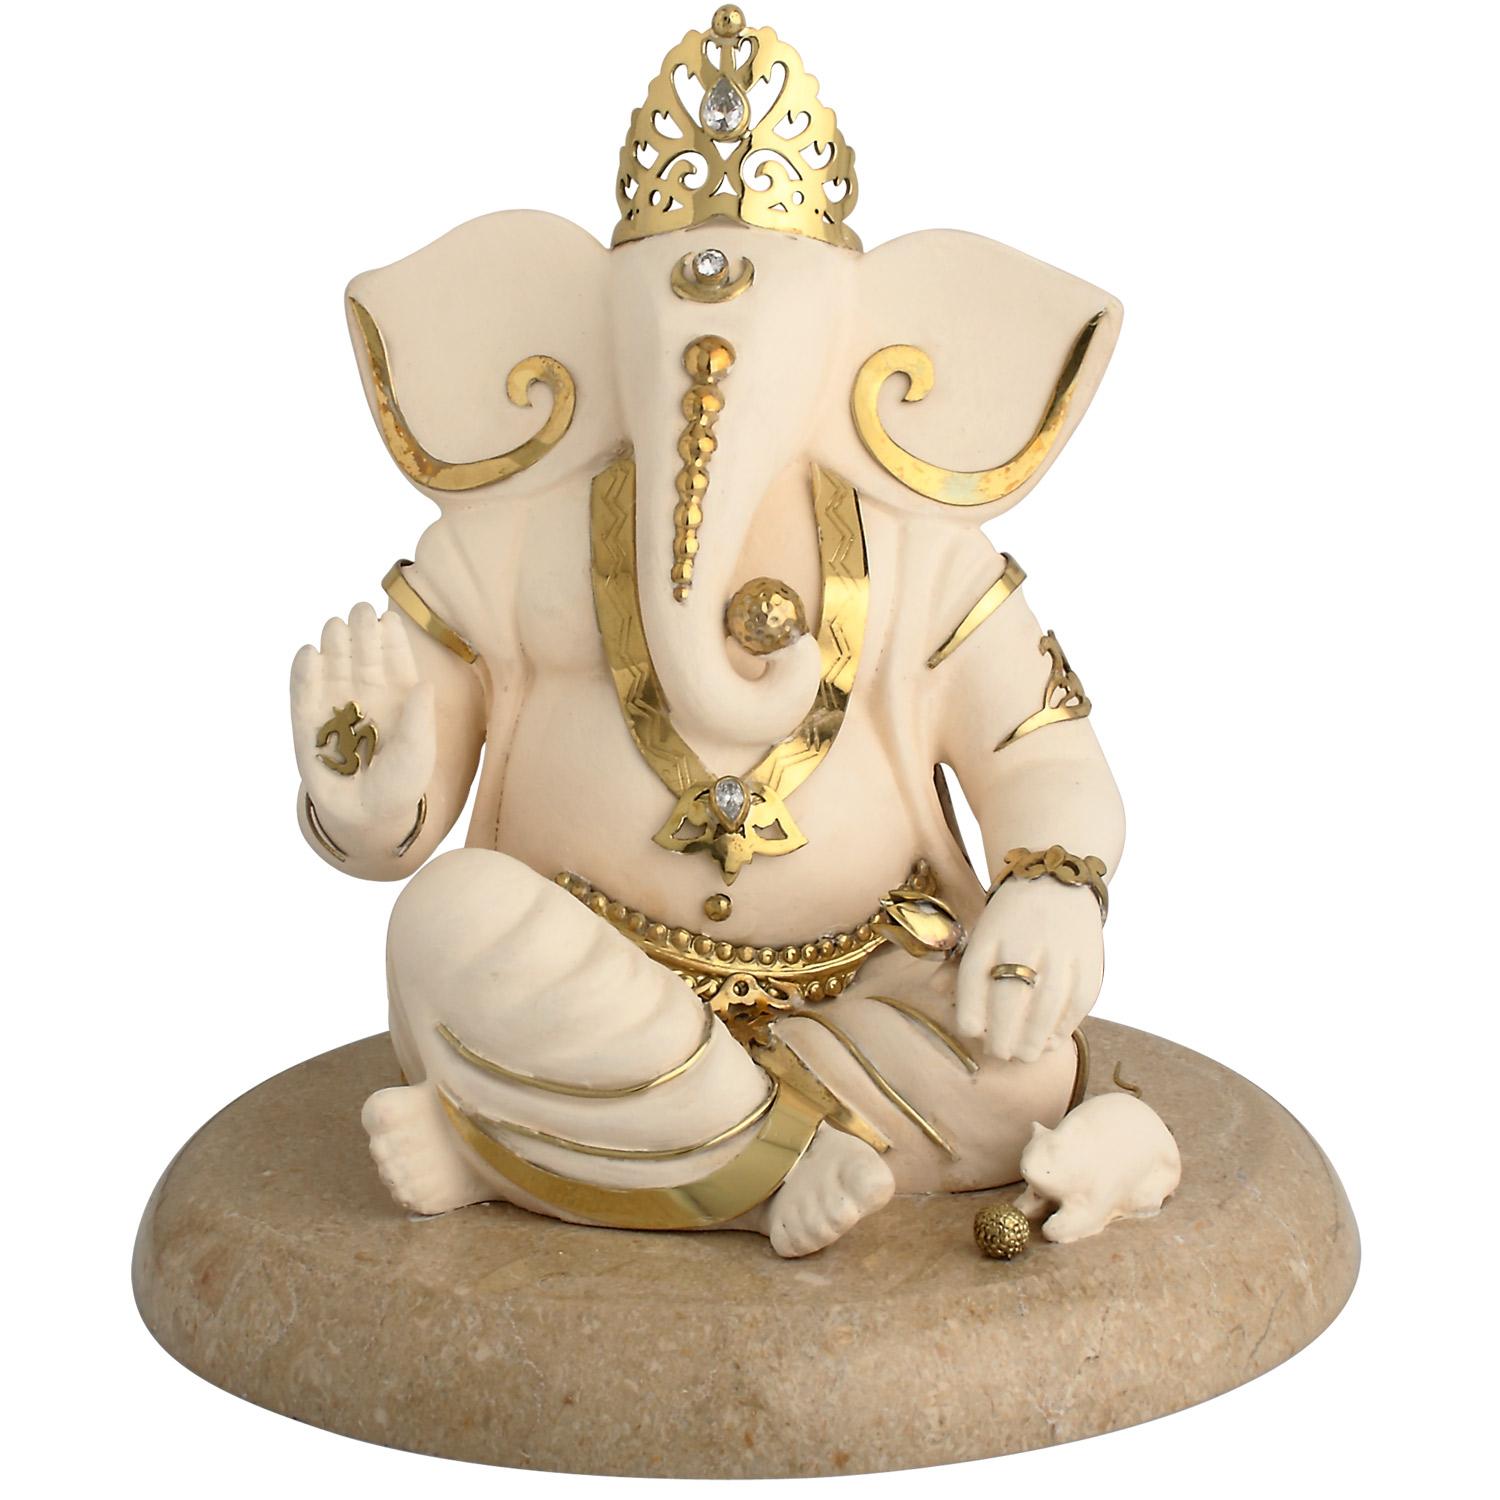 ganesh ji wallpapers hd free